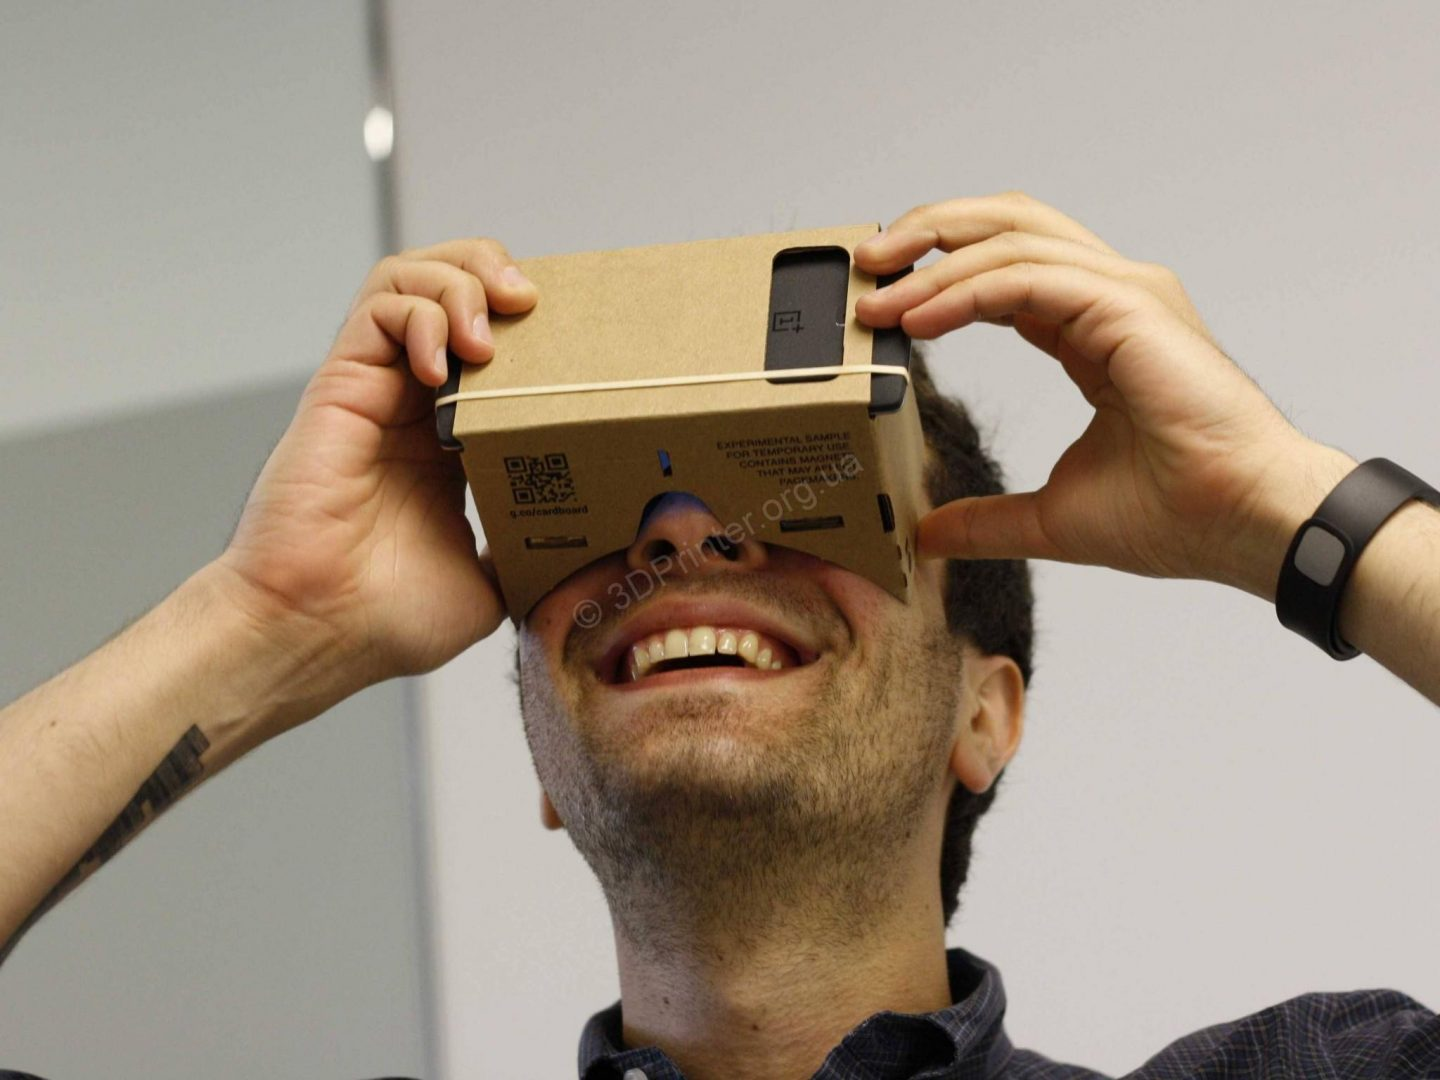 Google-Cardboard-is-another-take-on-virtual-reality-